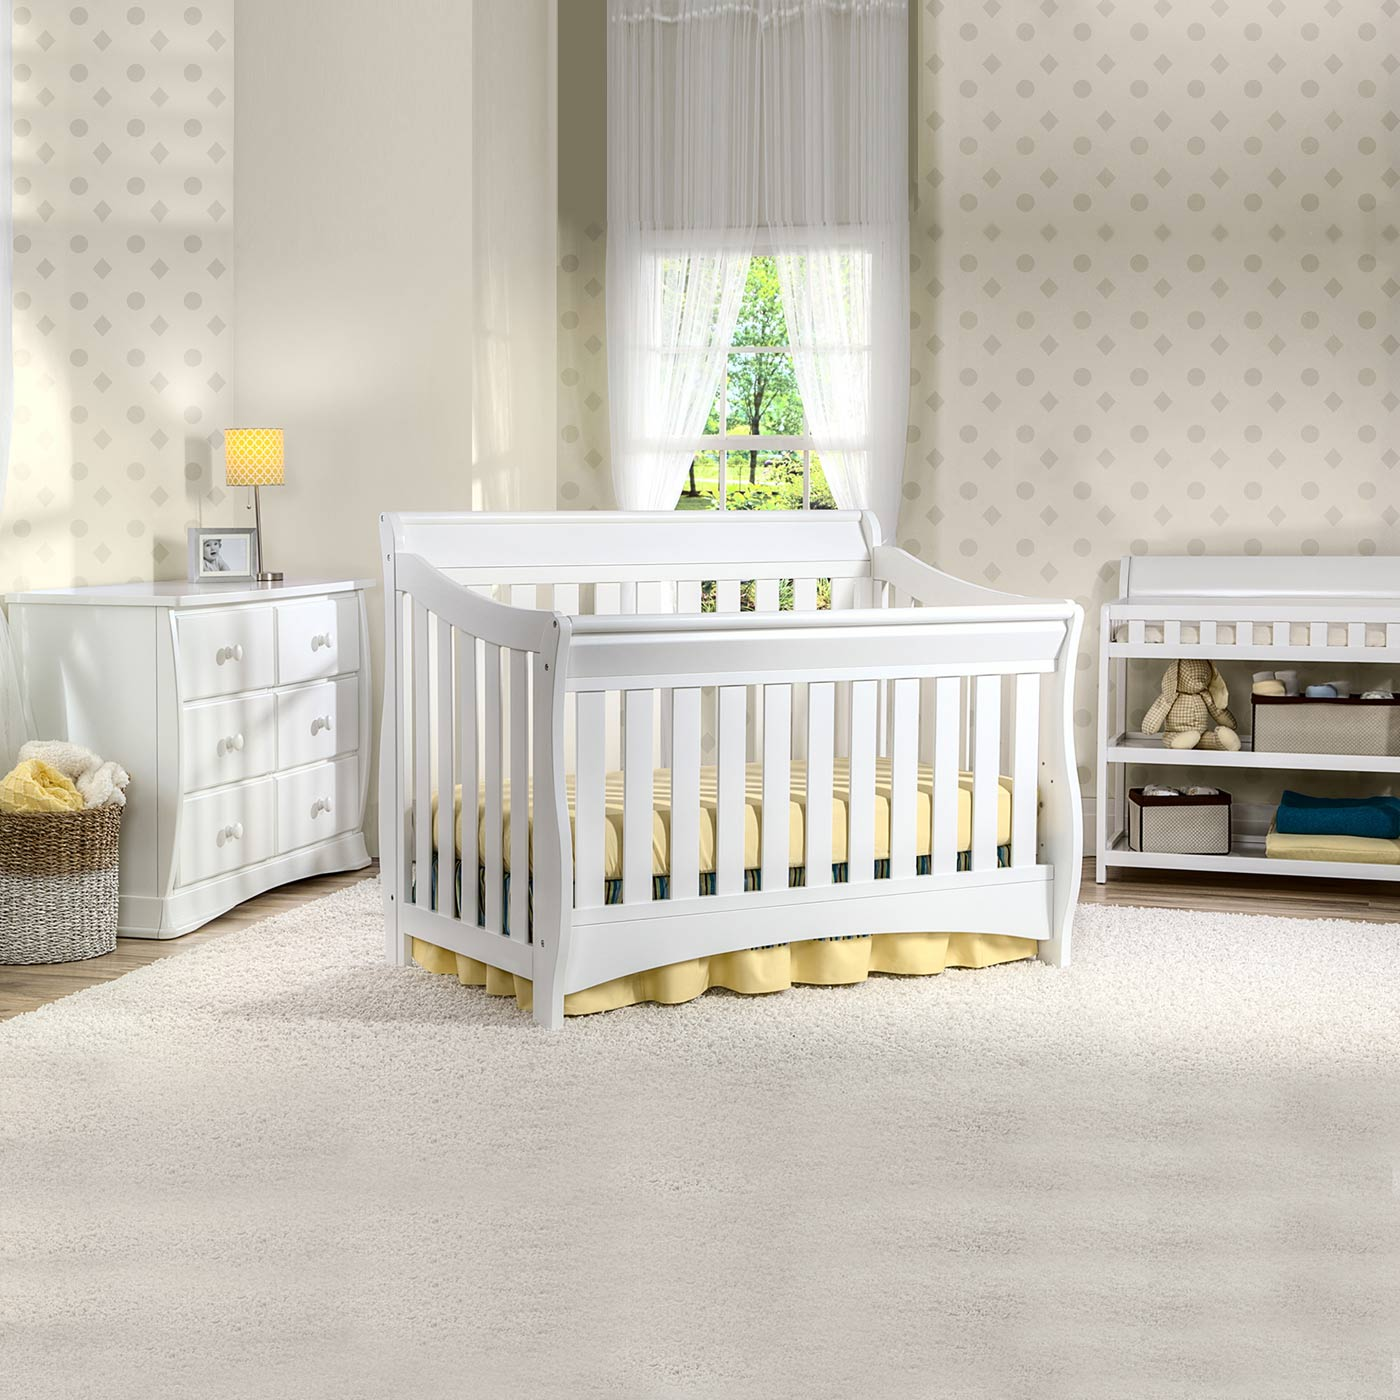 cribs com n crib convertible combo changing table dp changer amazon baby cherry bsf austin